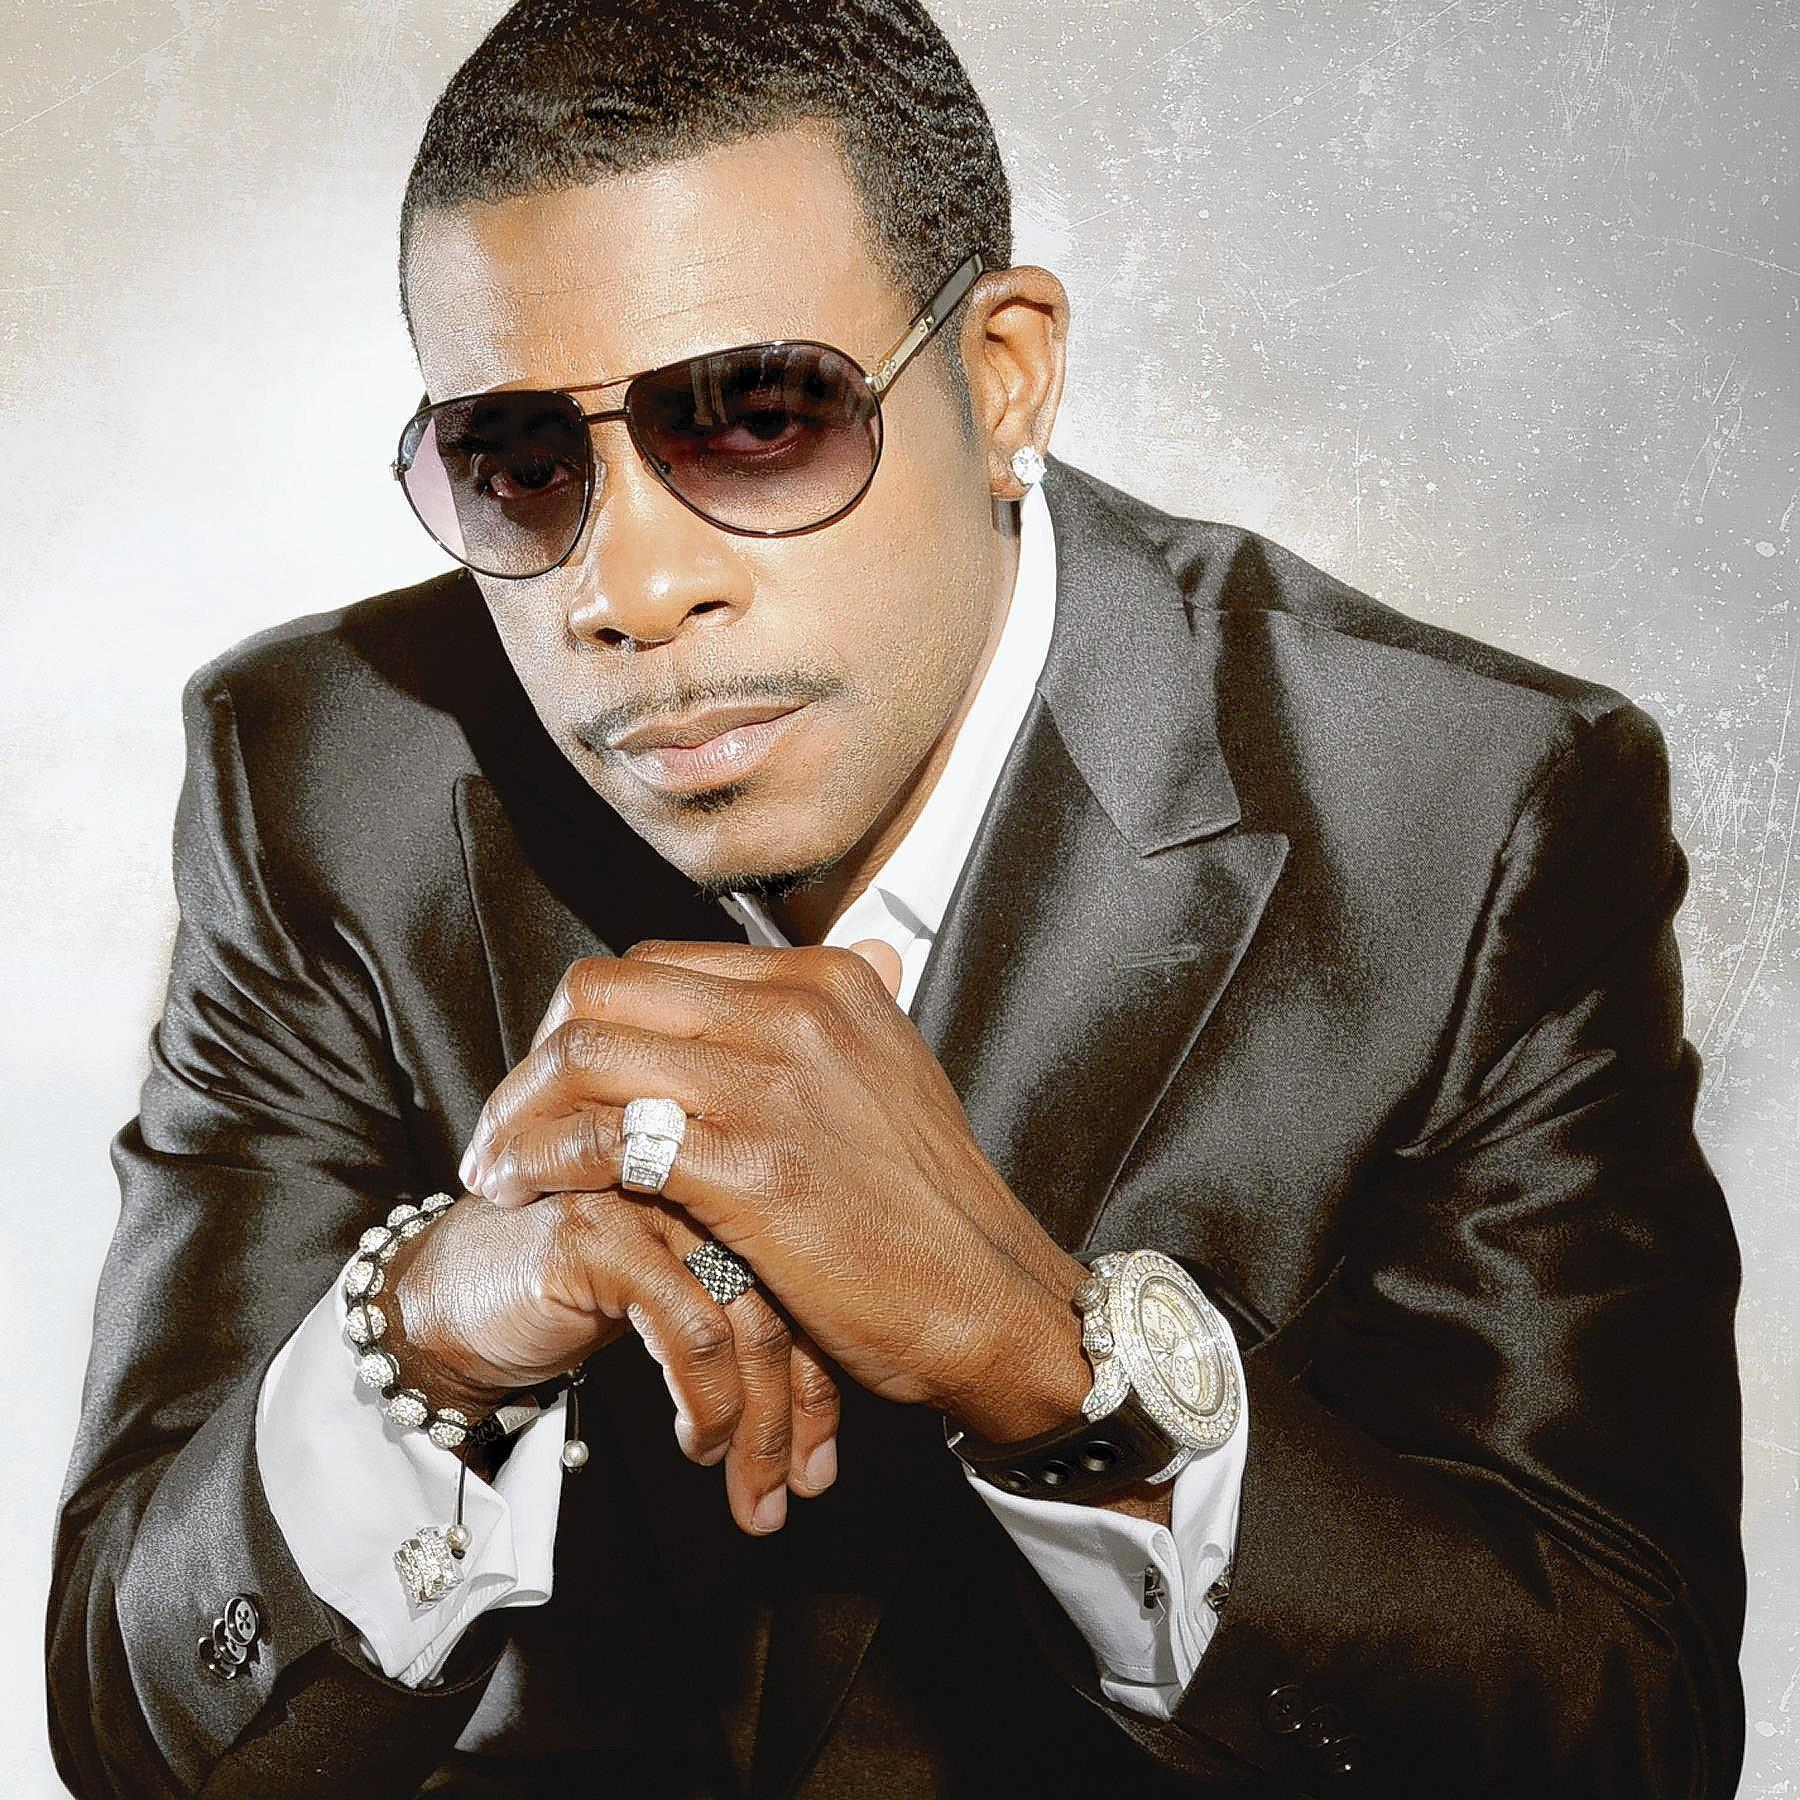 Keith Sweat is to perform as part of the Spring Jam at Hampton Coliseum.